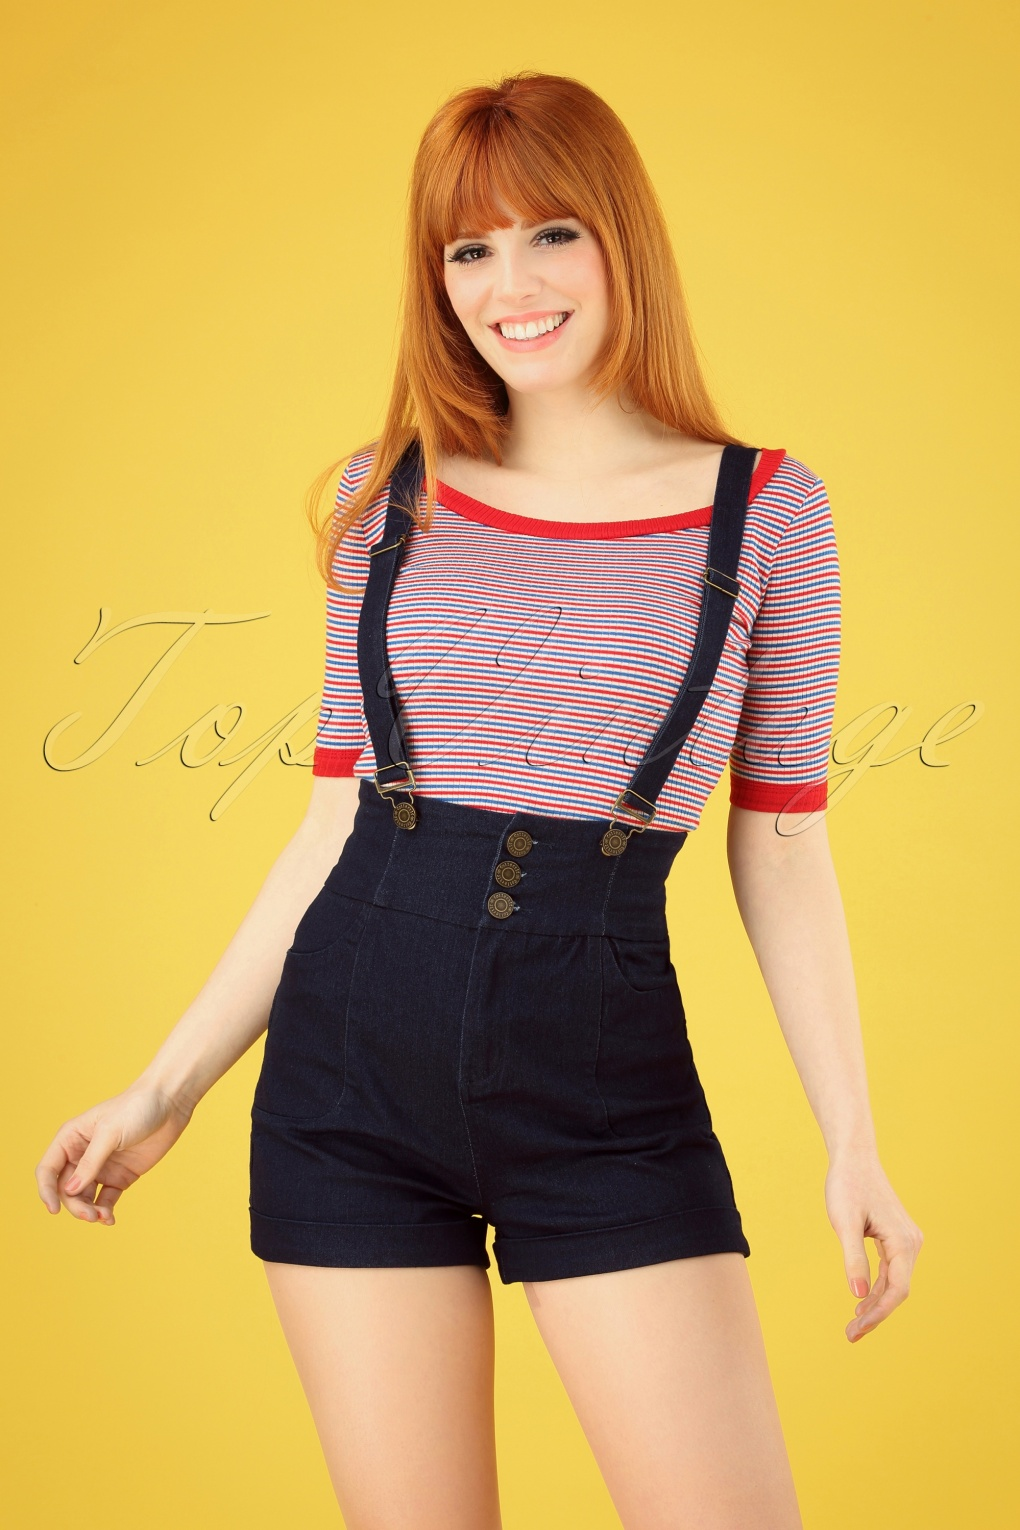 62825f2df87 1950s Clothing 50s Nomi Dungaree Shorts in Denim Blue £41.46 AT  vintagedancer.com